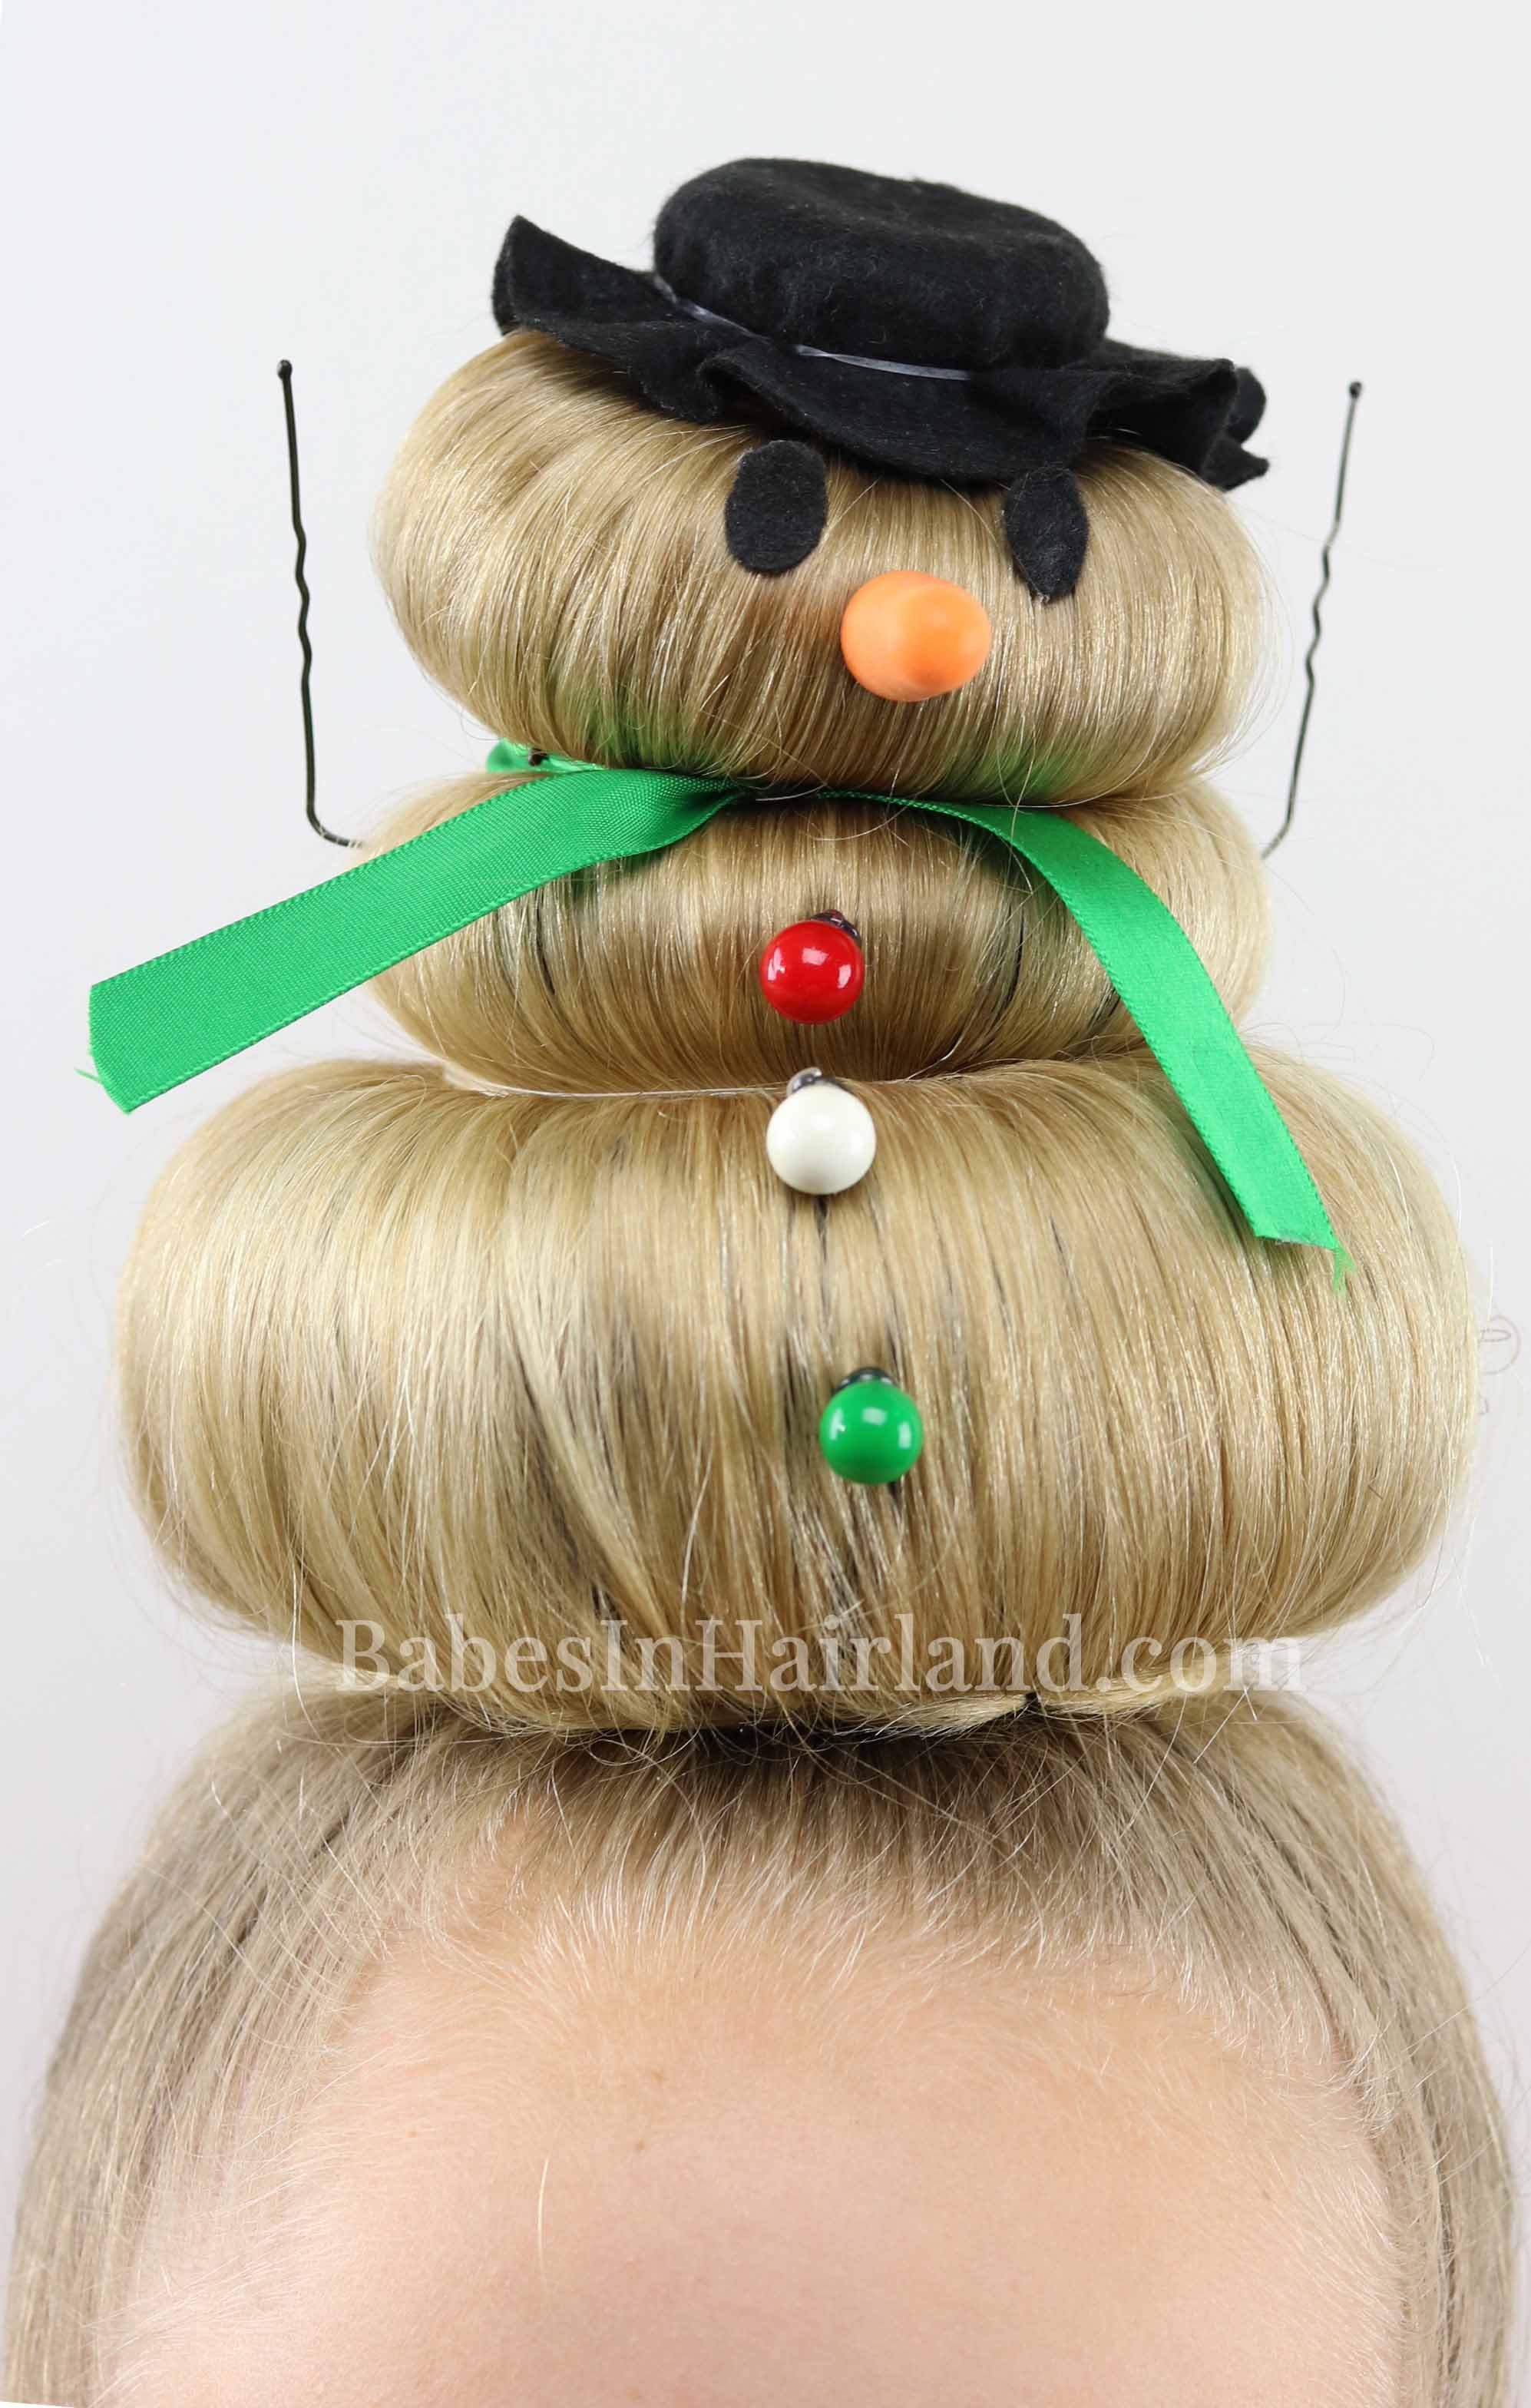 Take Crazy Hair Day Seriously Go All Out With This Cute Silly Snowman Hairstyle Dress Him